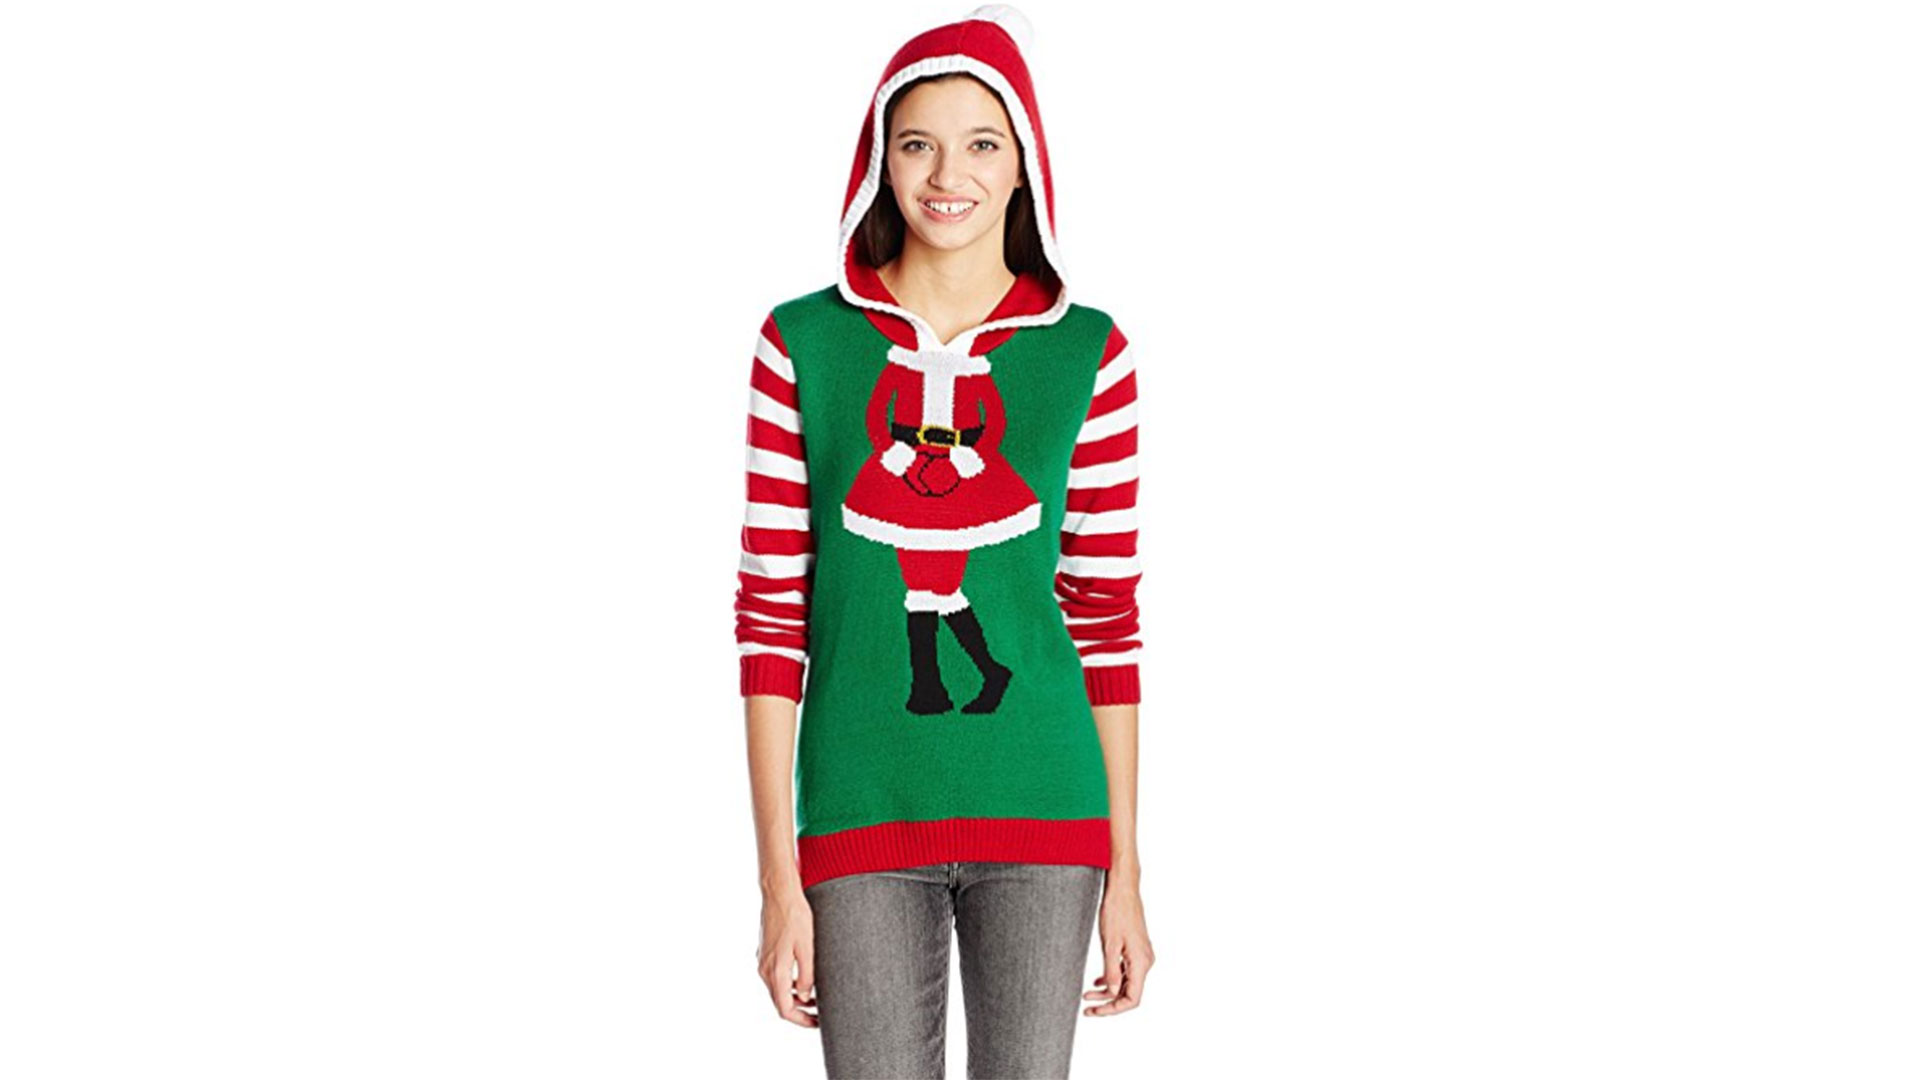 Mrs. Claus Christmas Sweater